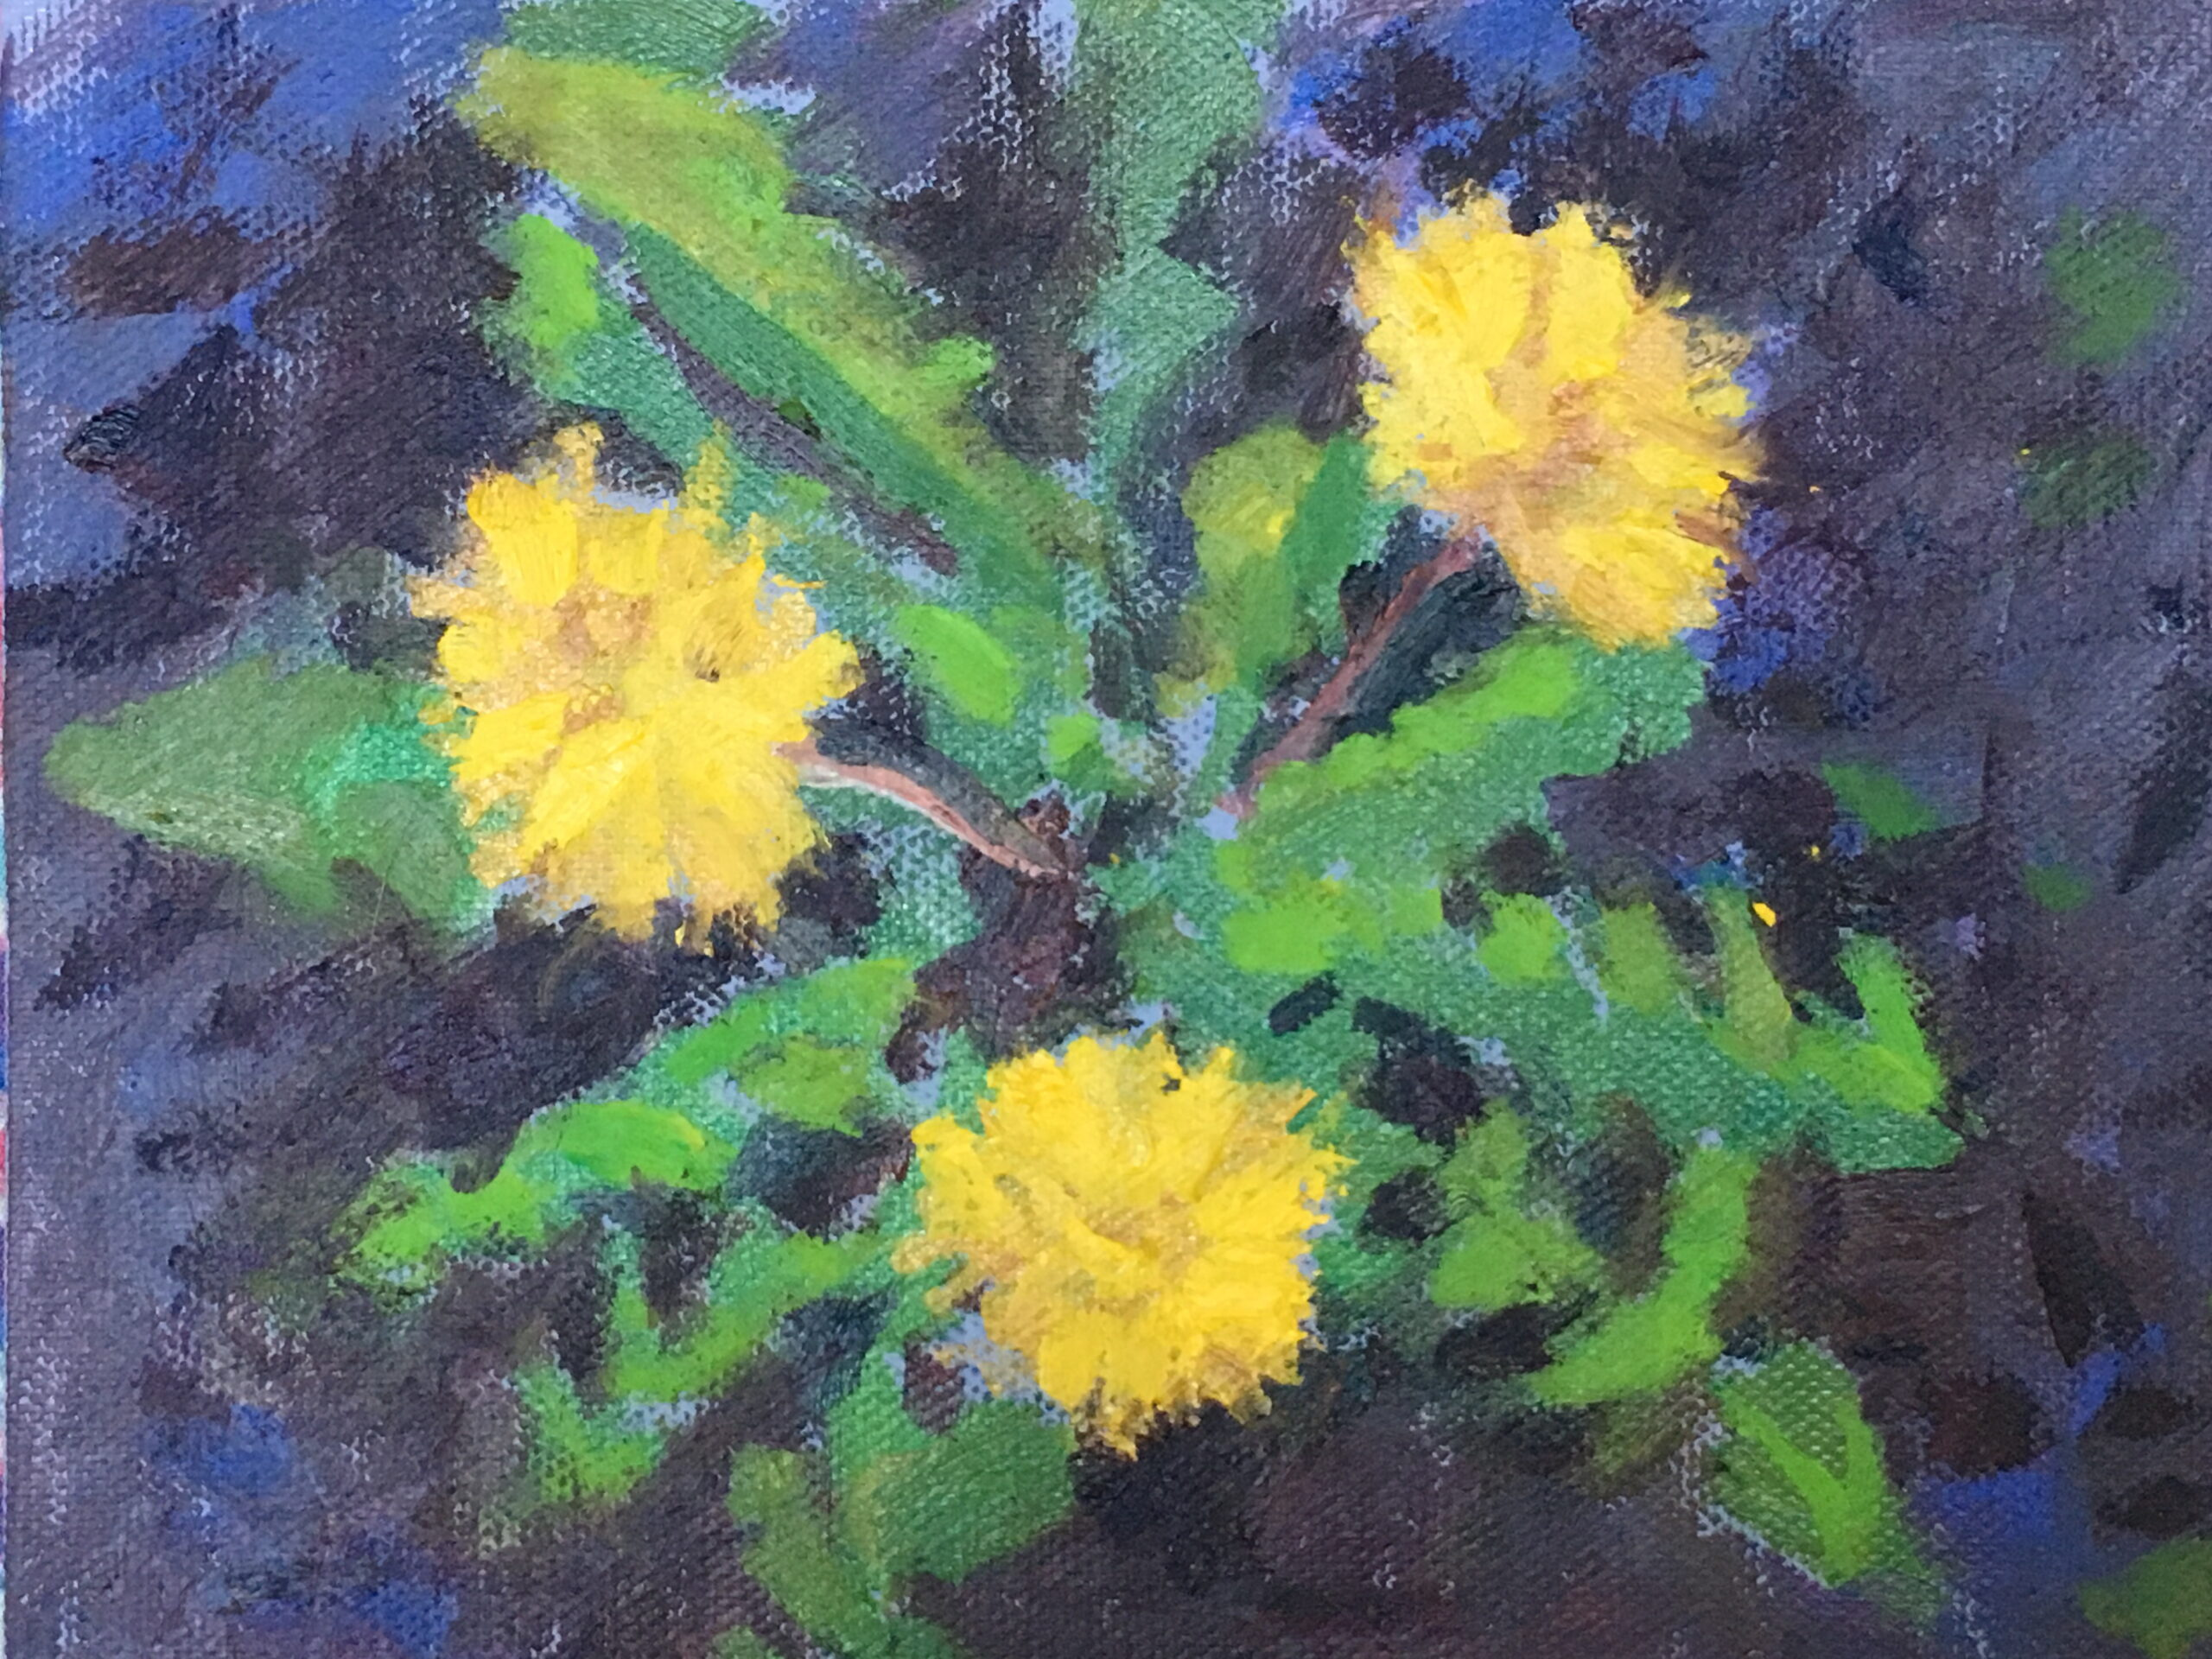 Dandelions, Oil on Canvas on Panel, 6 x 8 Inches, by Susan Grisell, $200